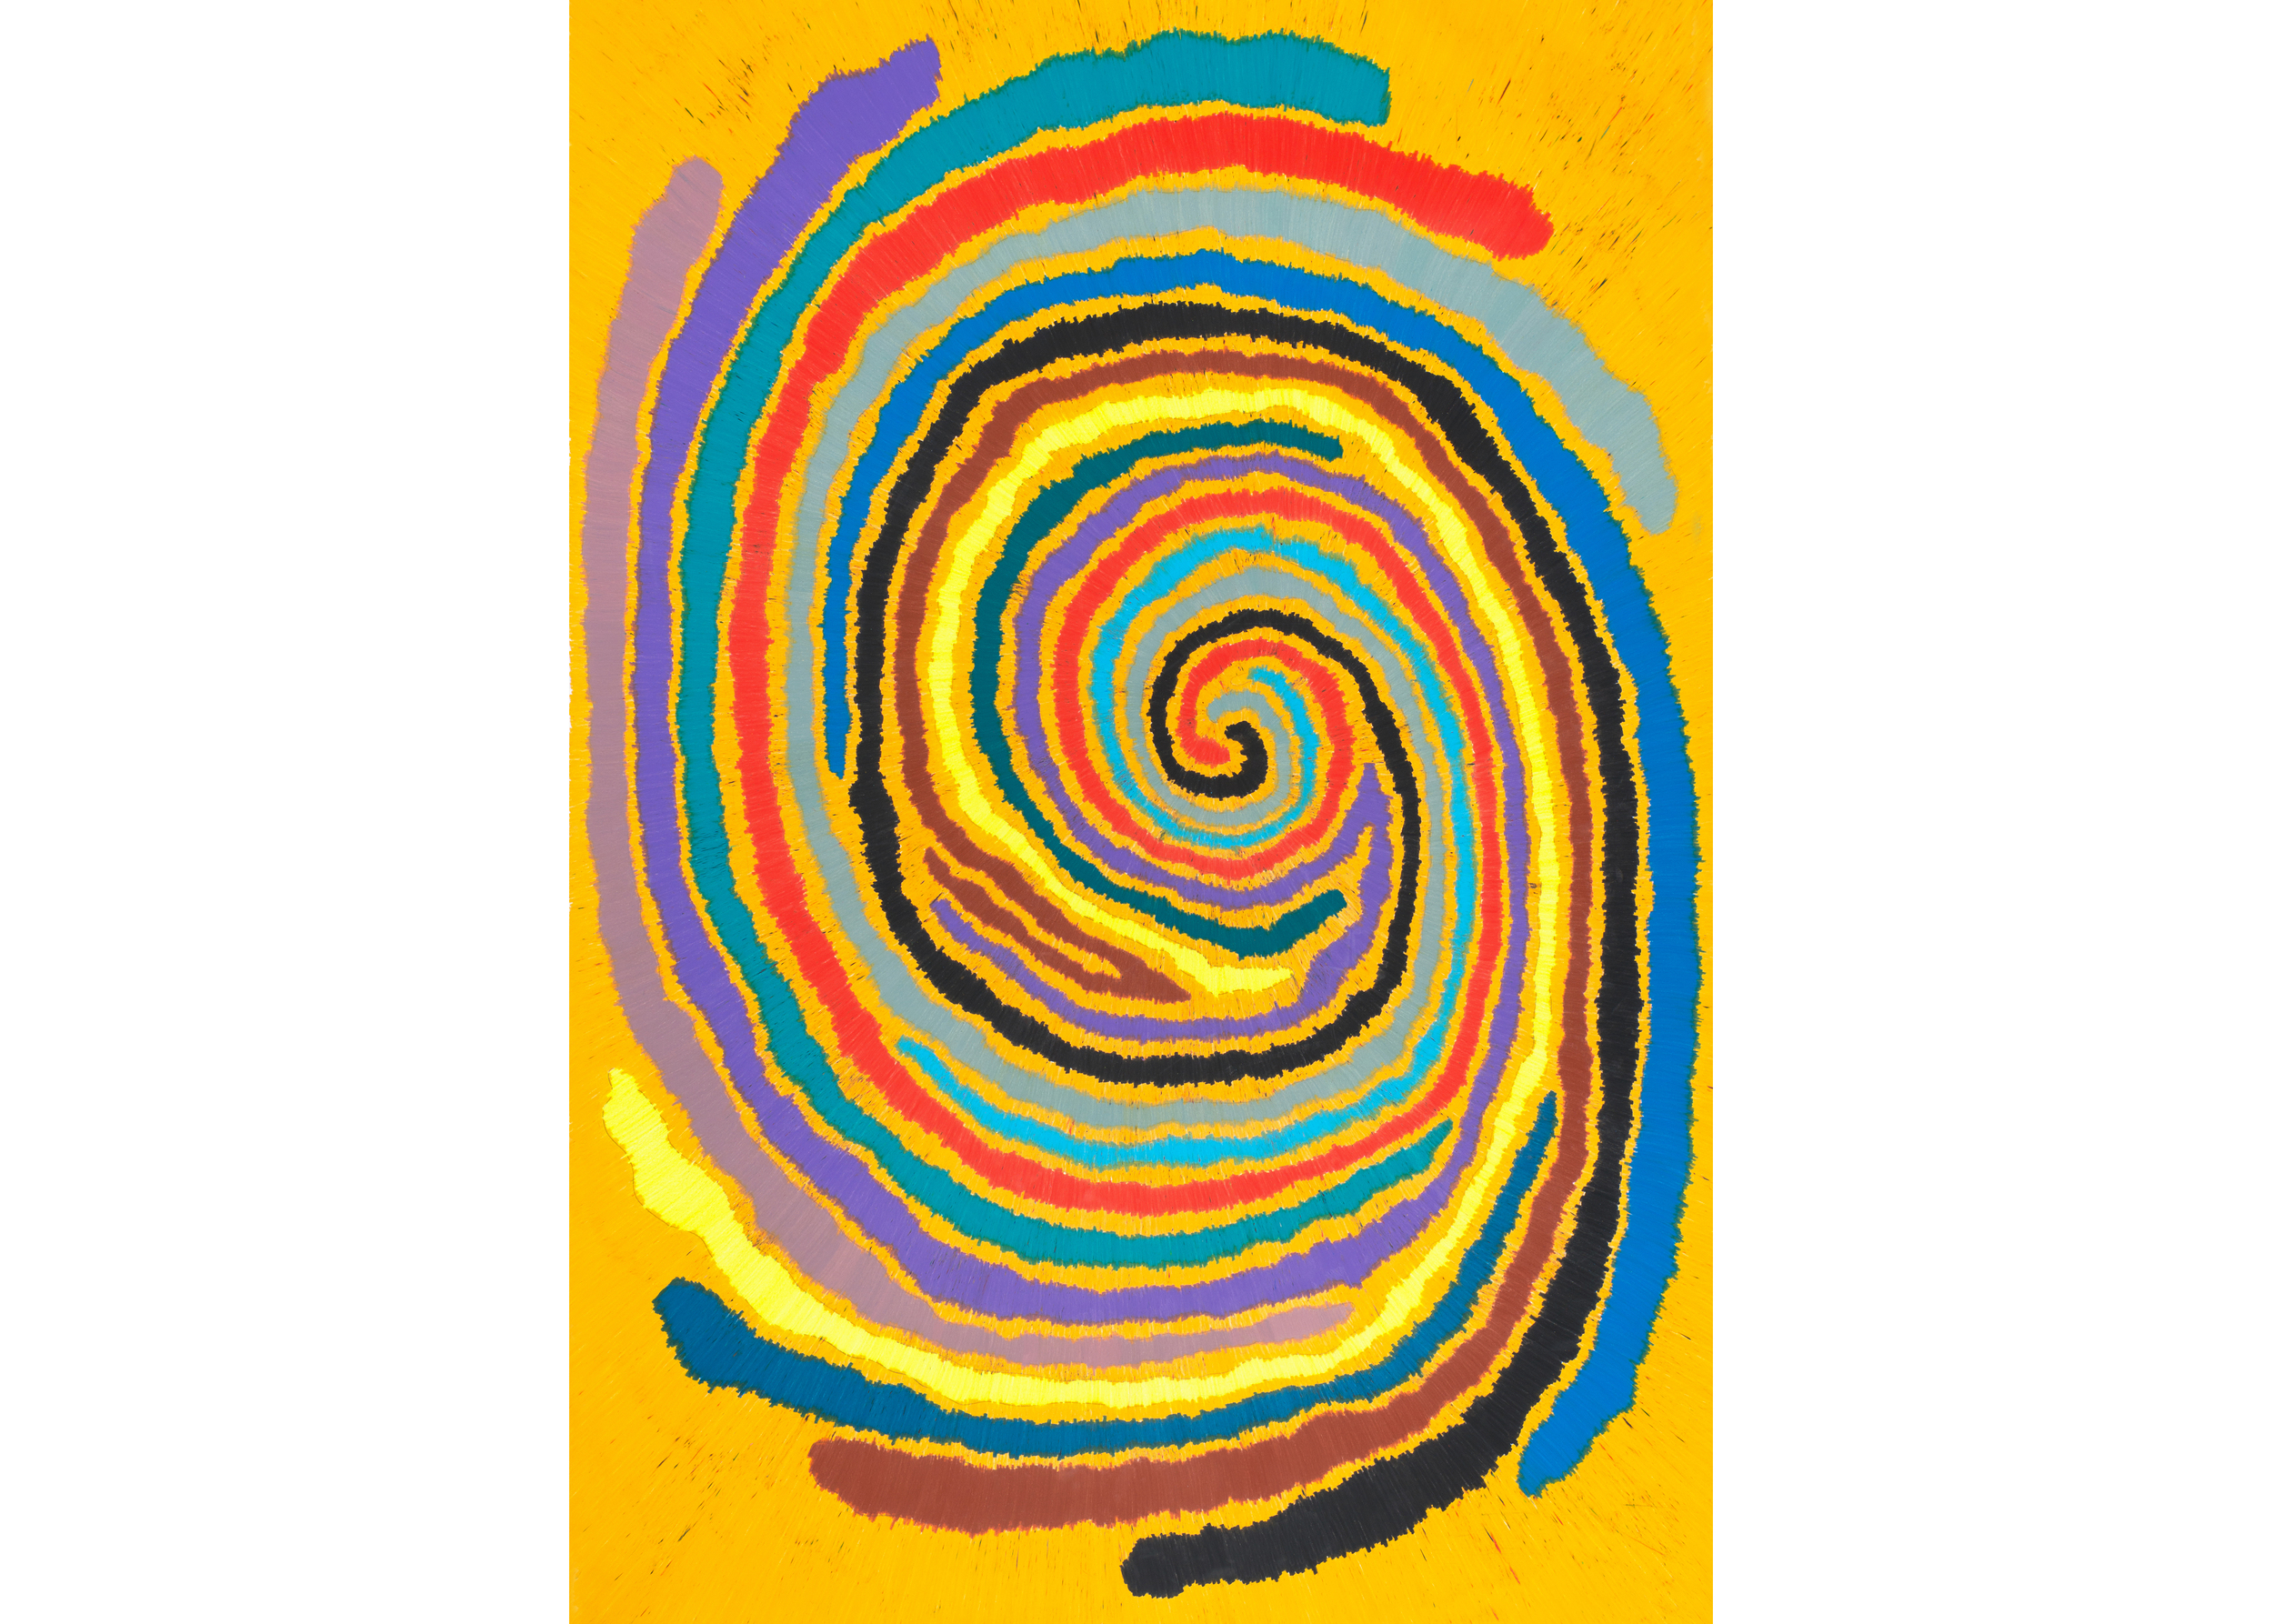 Untitled (Multicolor Light Based Time Loop), 2015, color pencil on paper, 73 x 51 in.